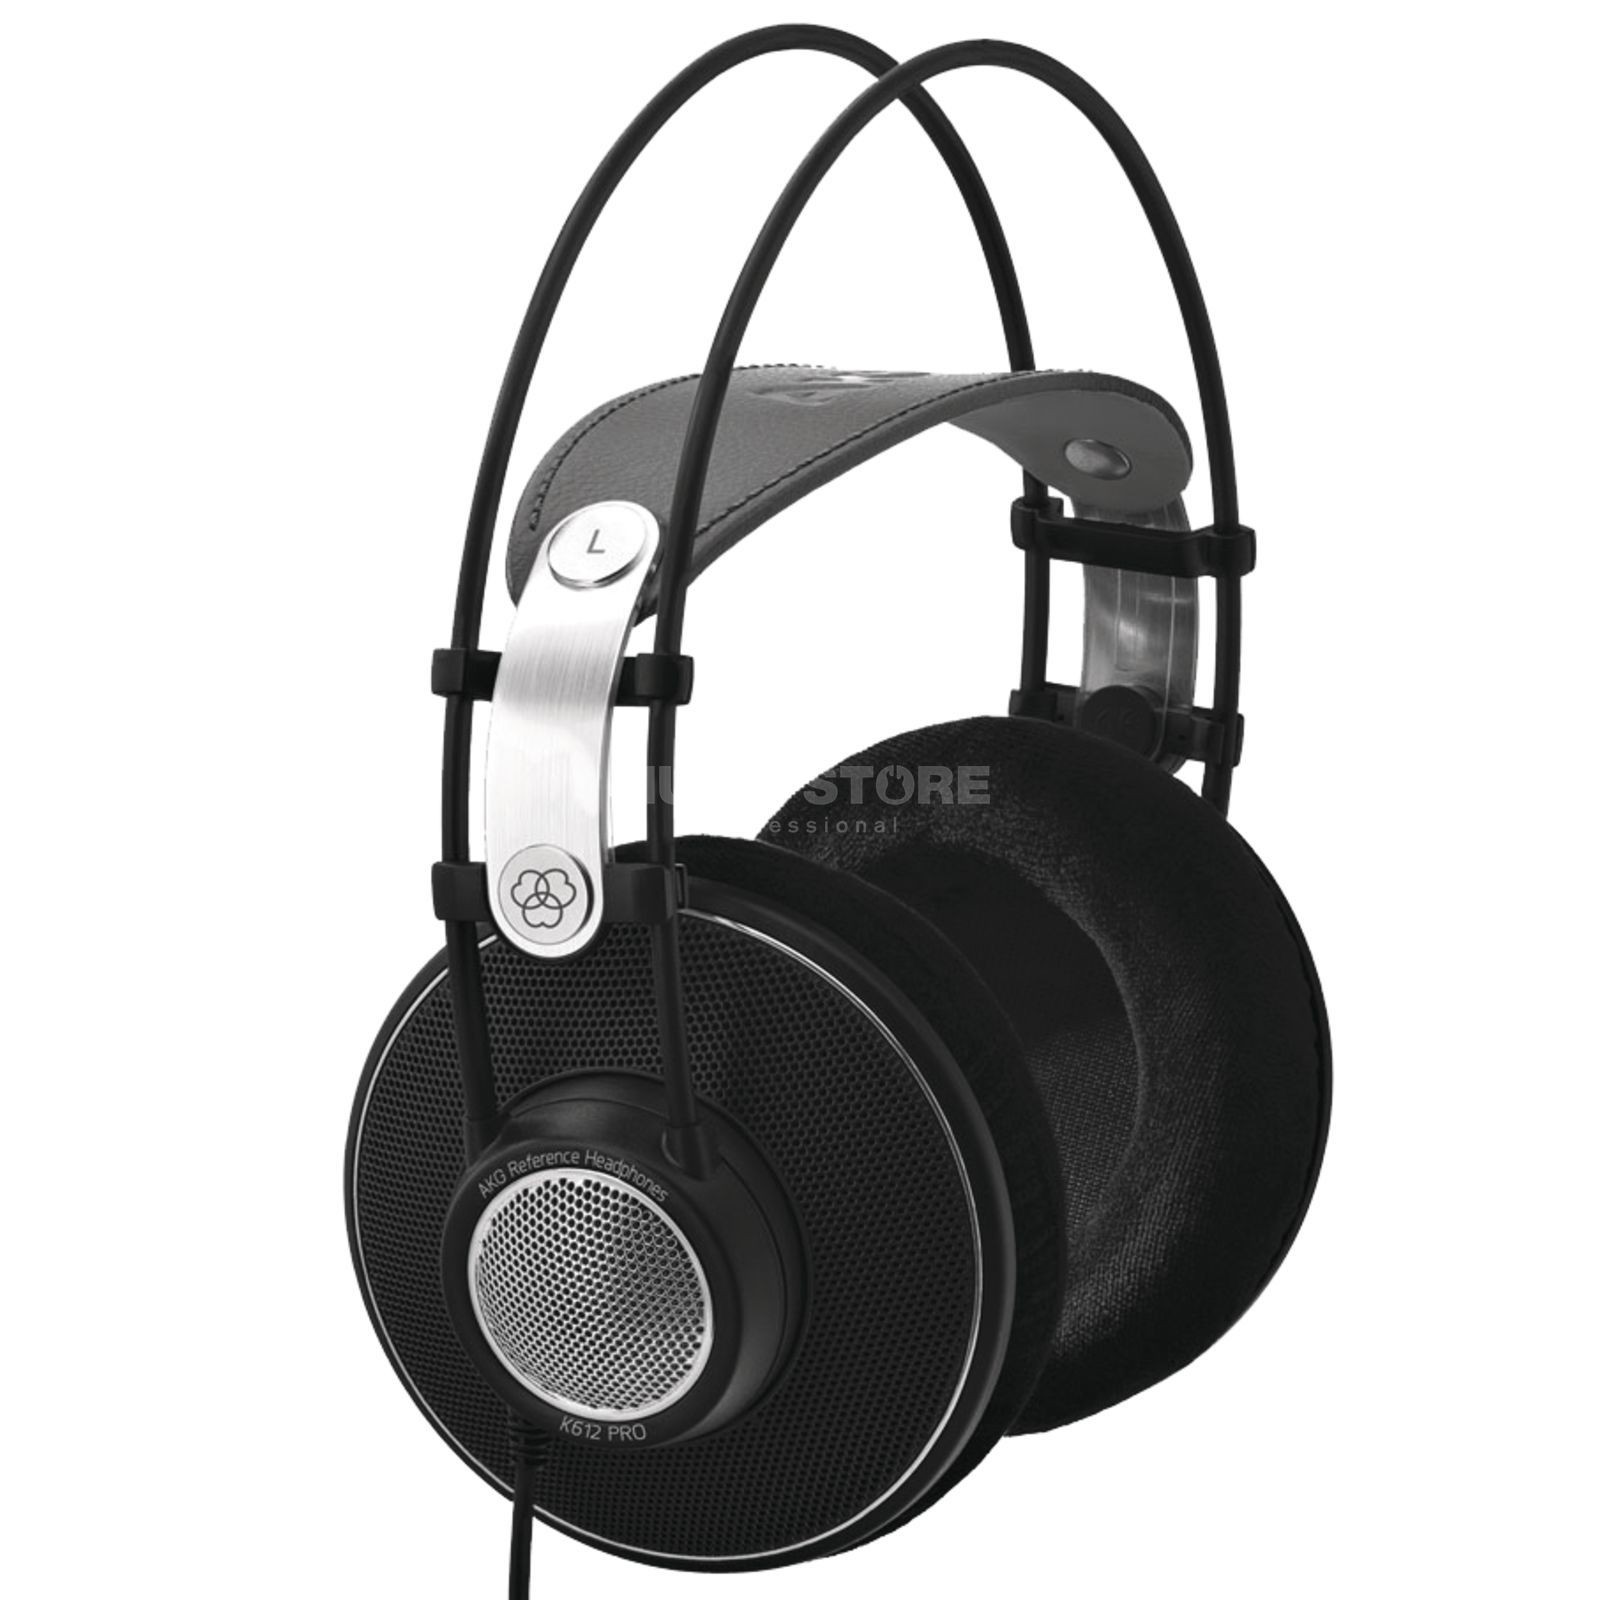 AKG K612 PRO Professional Studio Monitoring Headphones Product Image